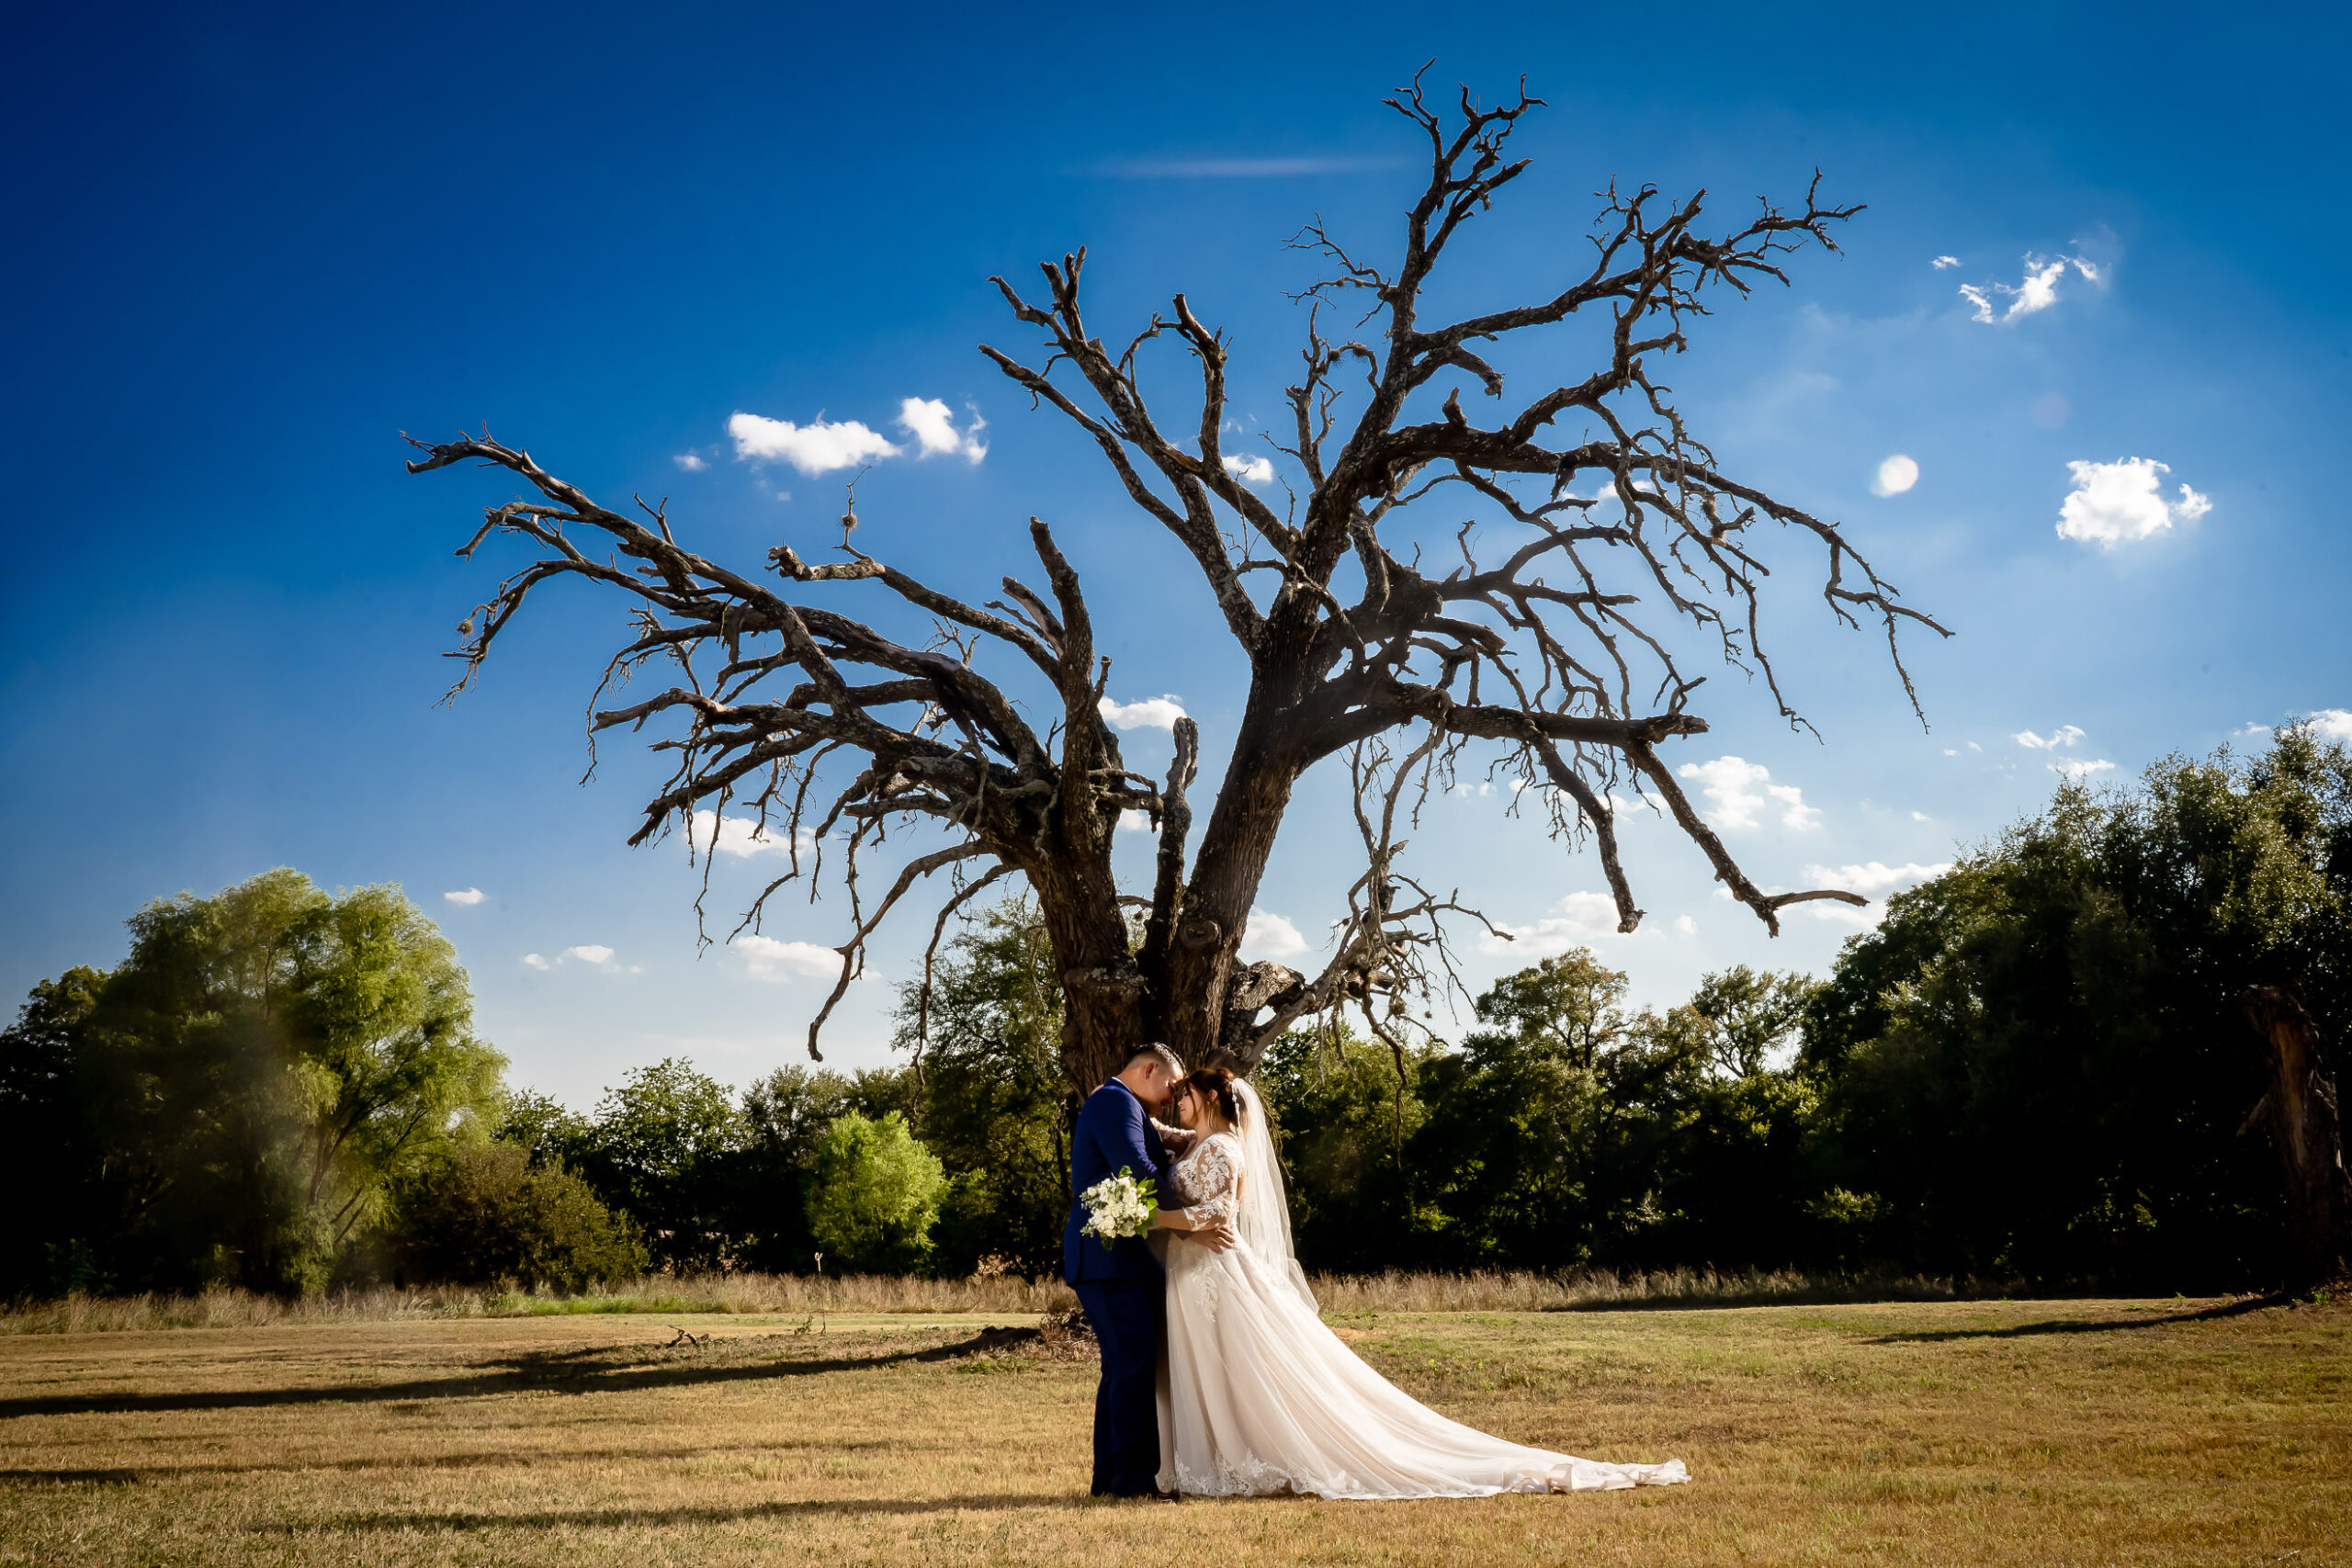 Wedding in Belton